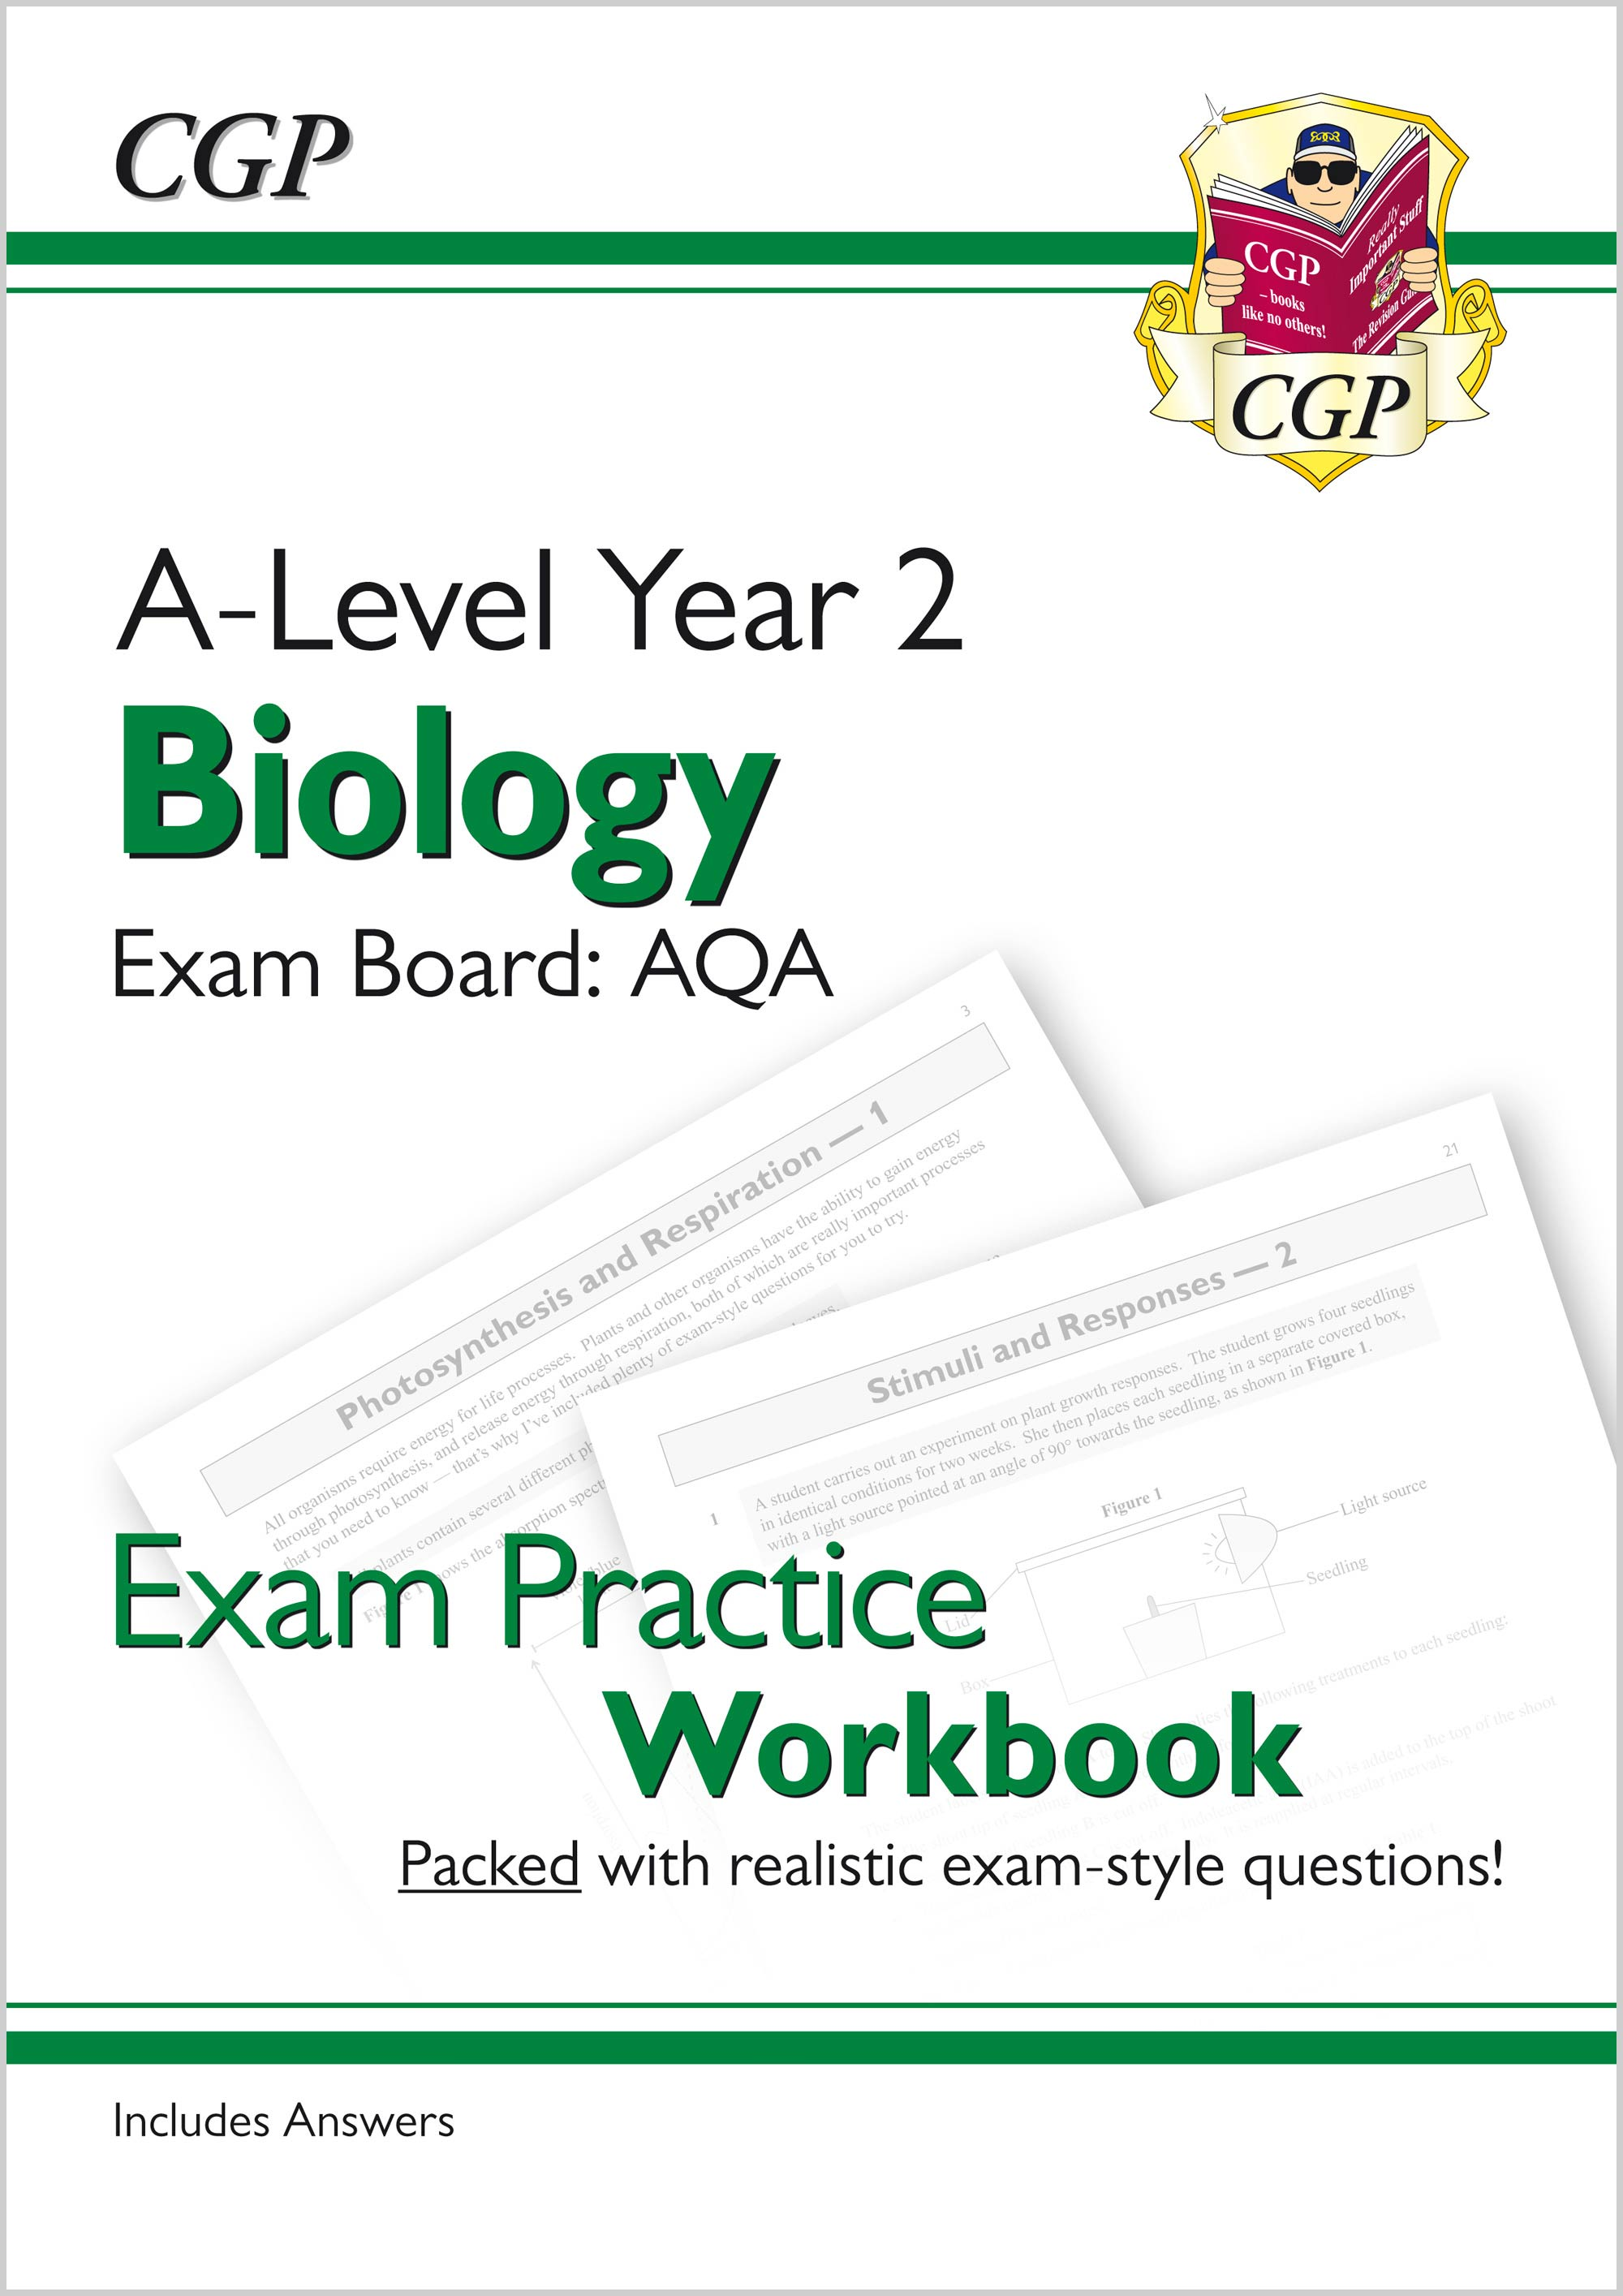 BAQ61 - New A-Level Biology for 2018: AQA Year 2 Exam Practice Workbook - includes Answers